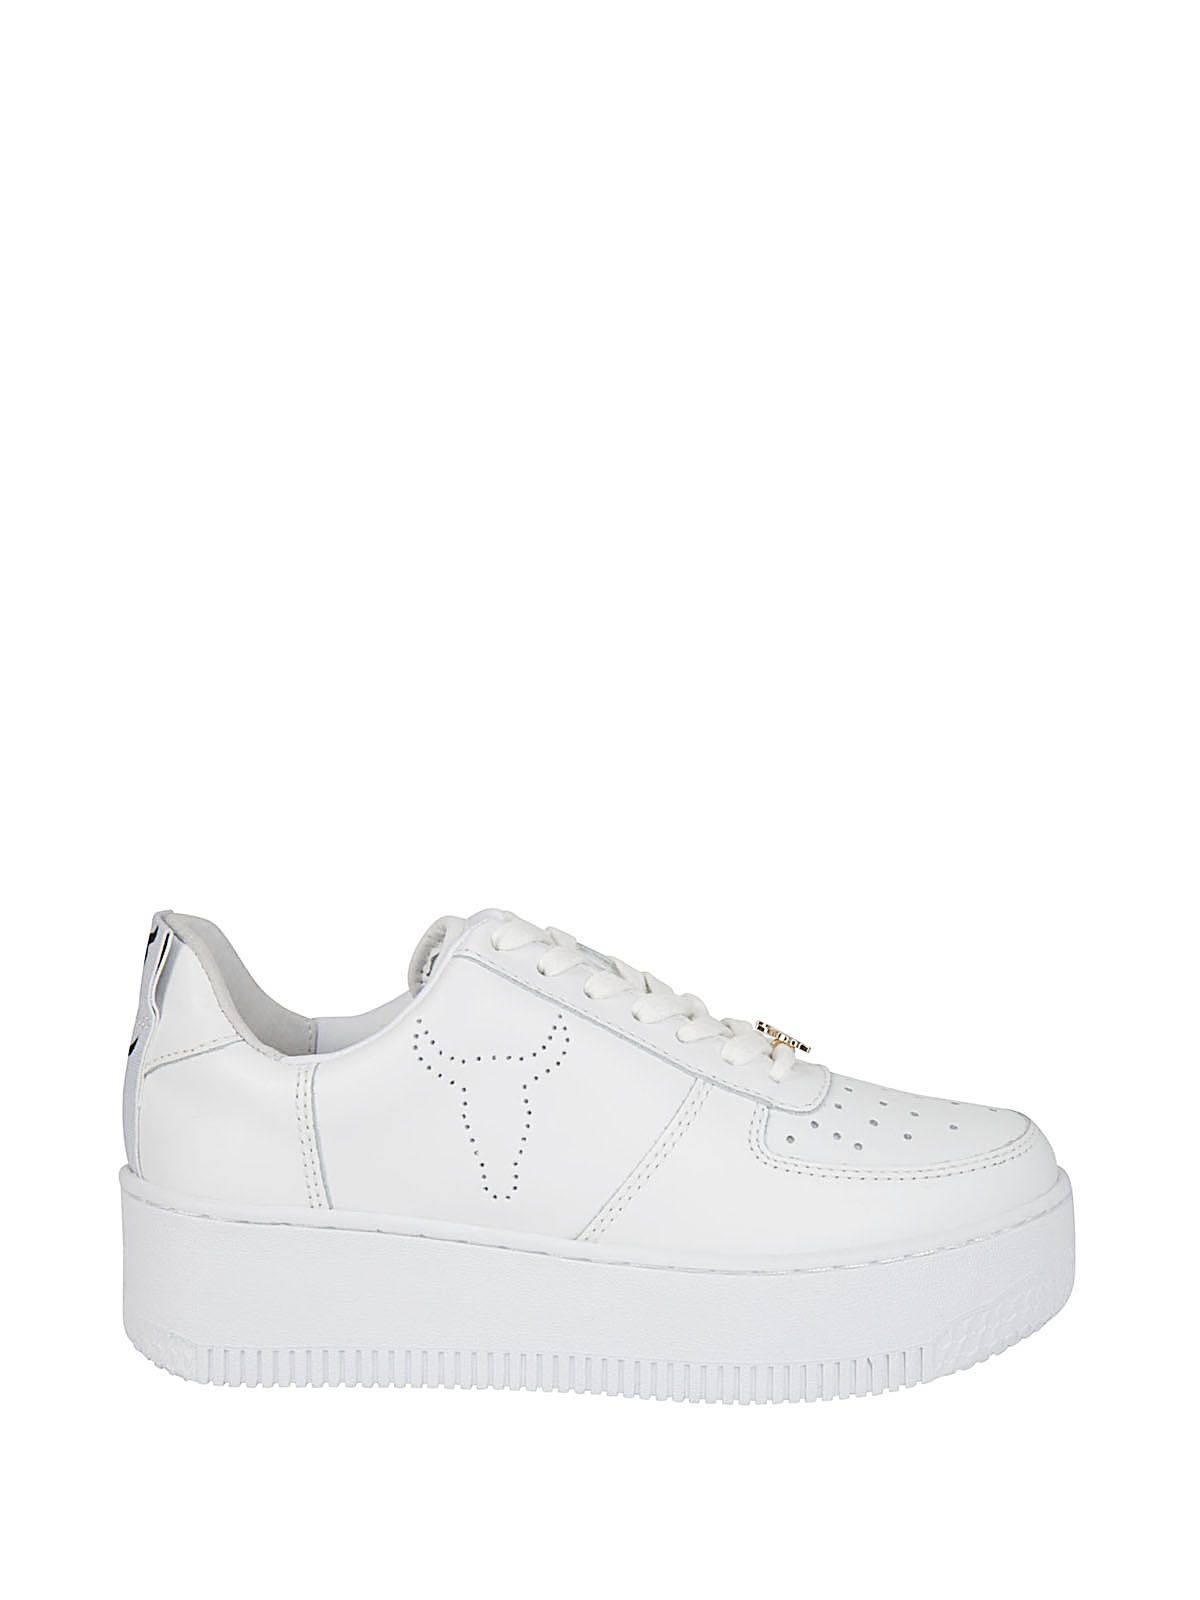 Windsor Smith Perforated Sneakers